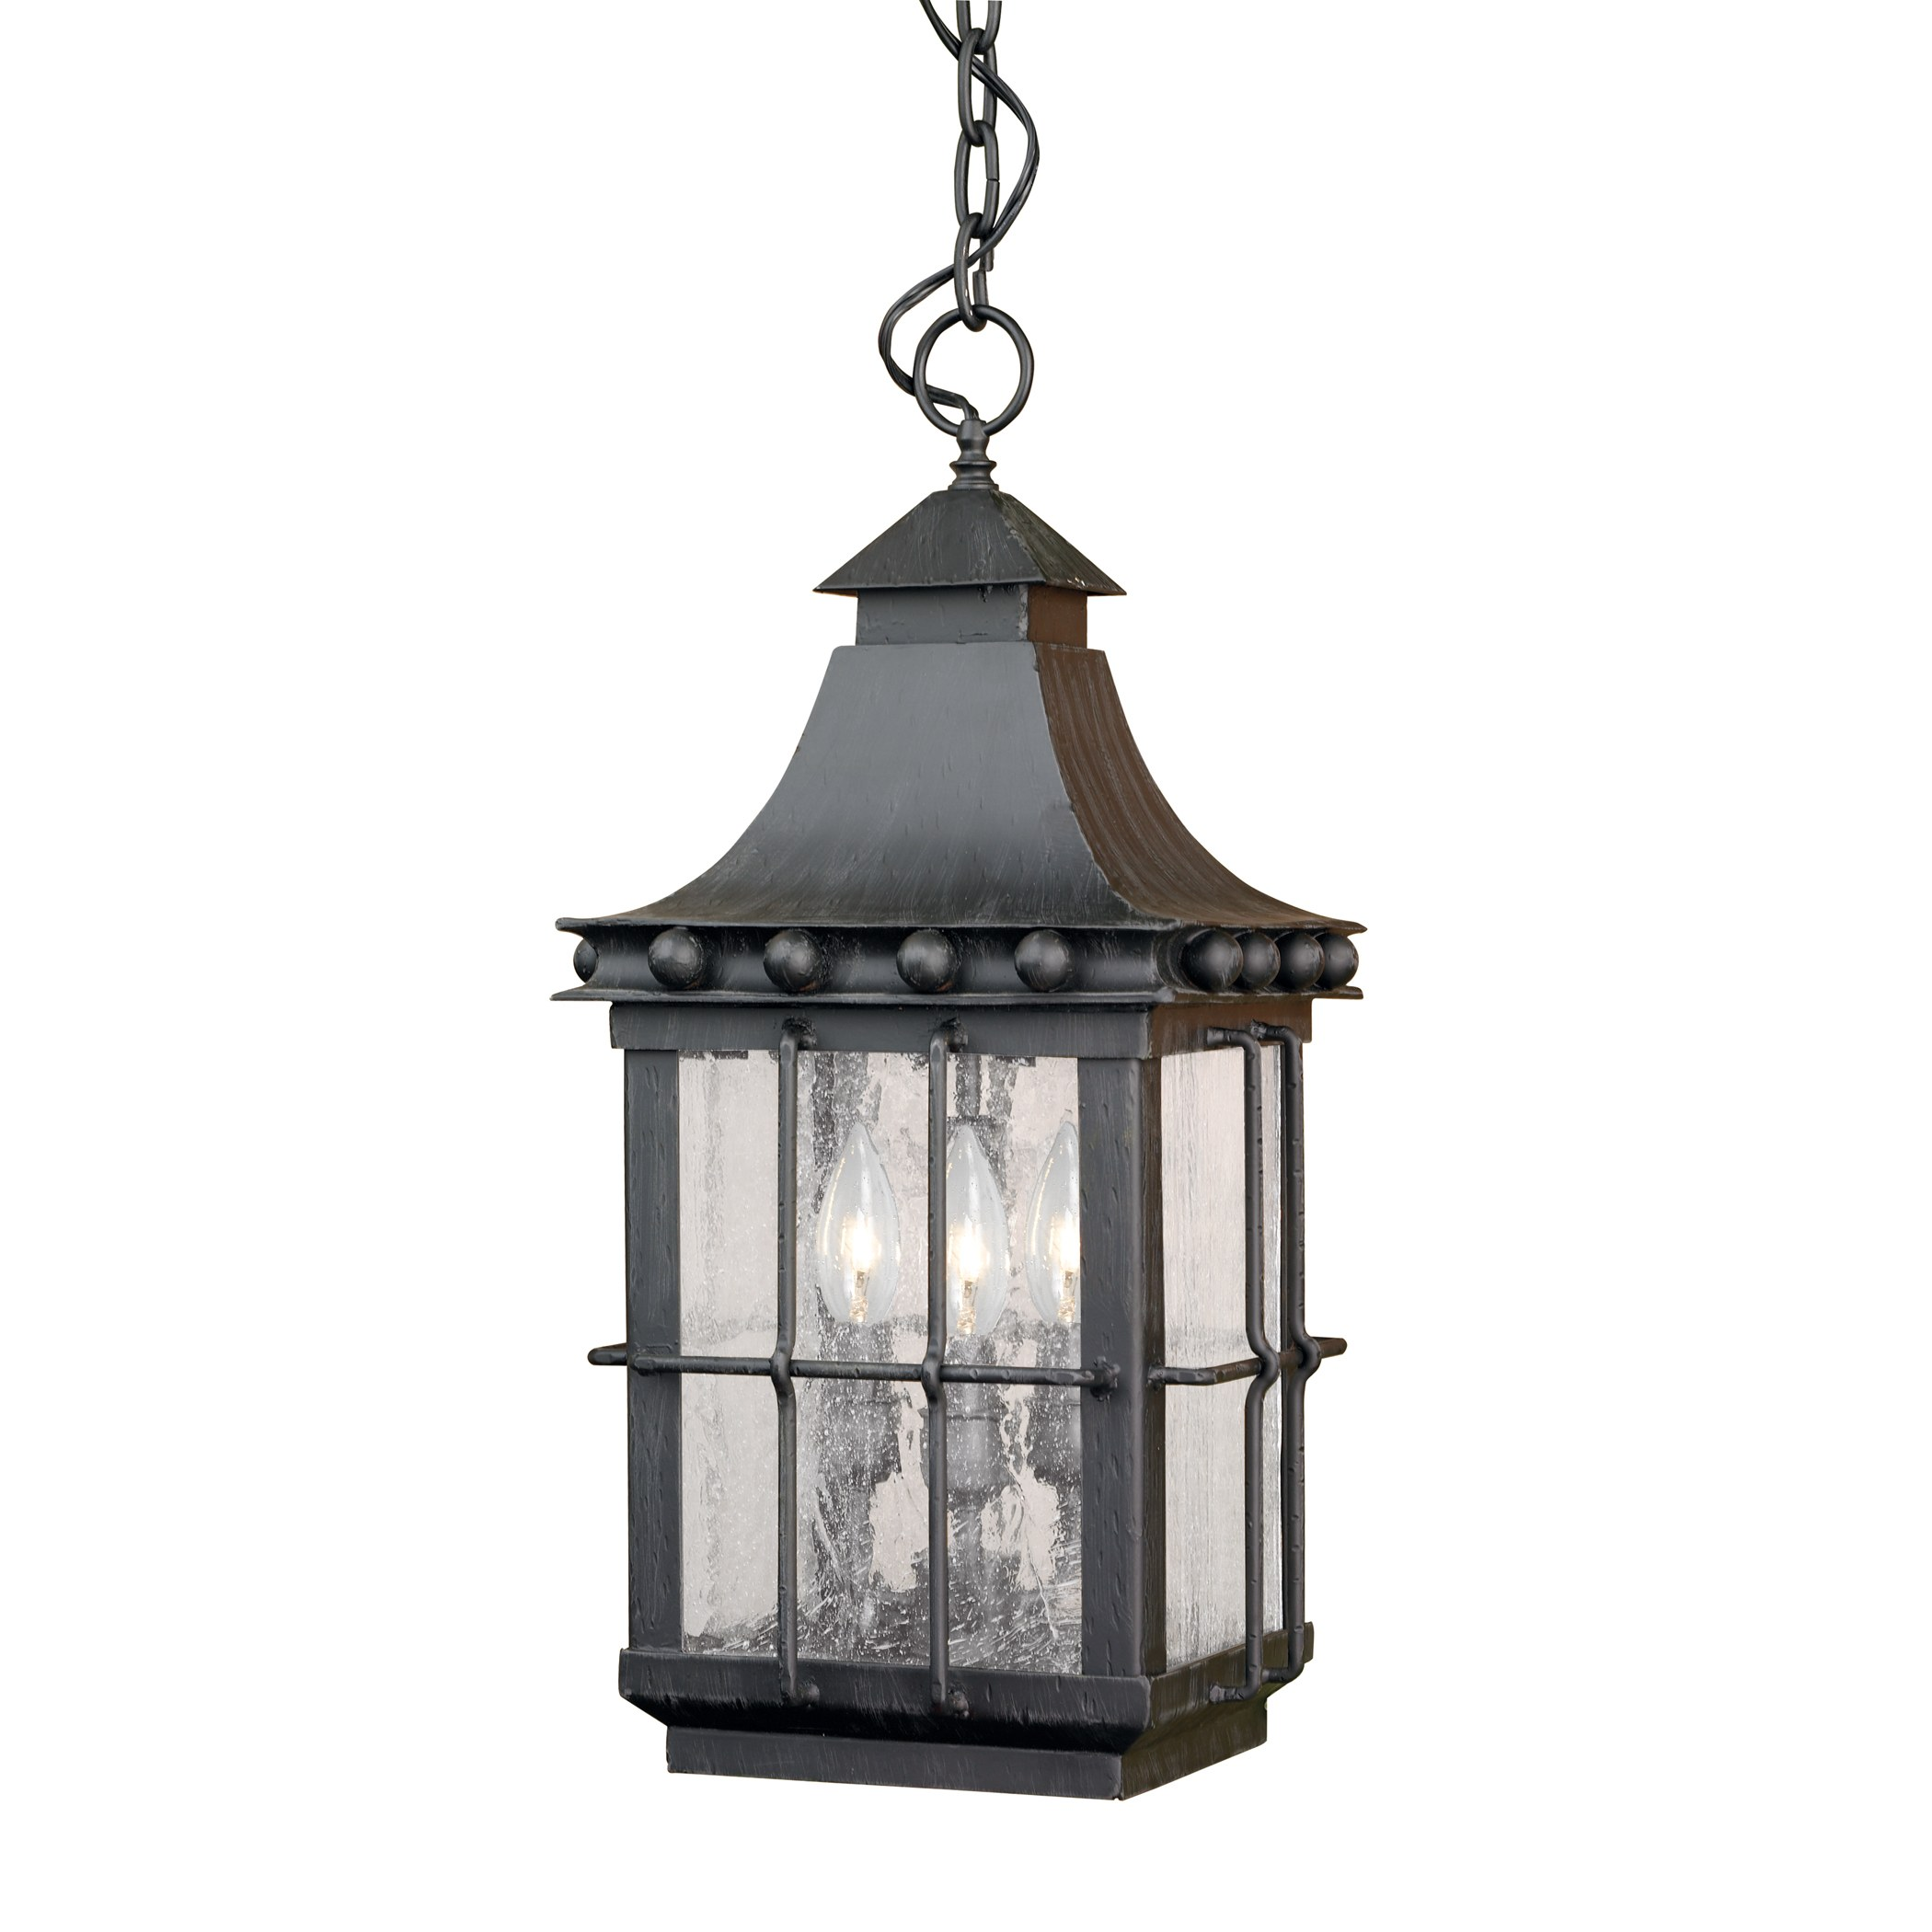 Outdoor Hanging Lantern Taos Collection In A Espresso